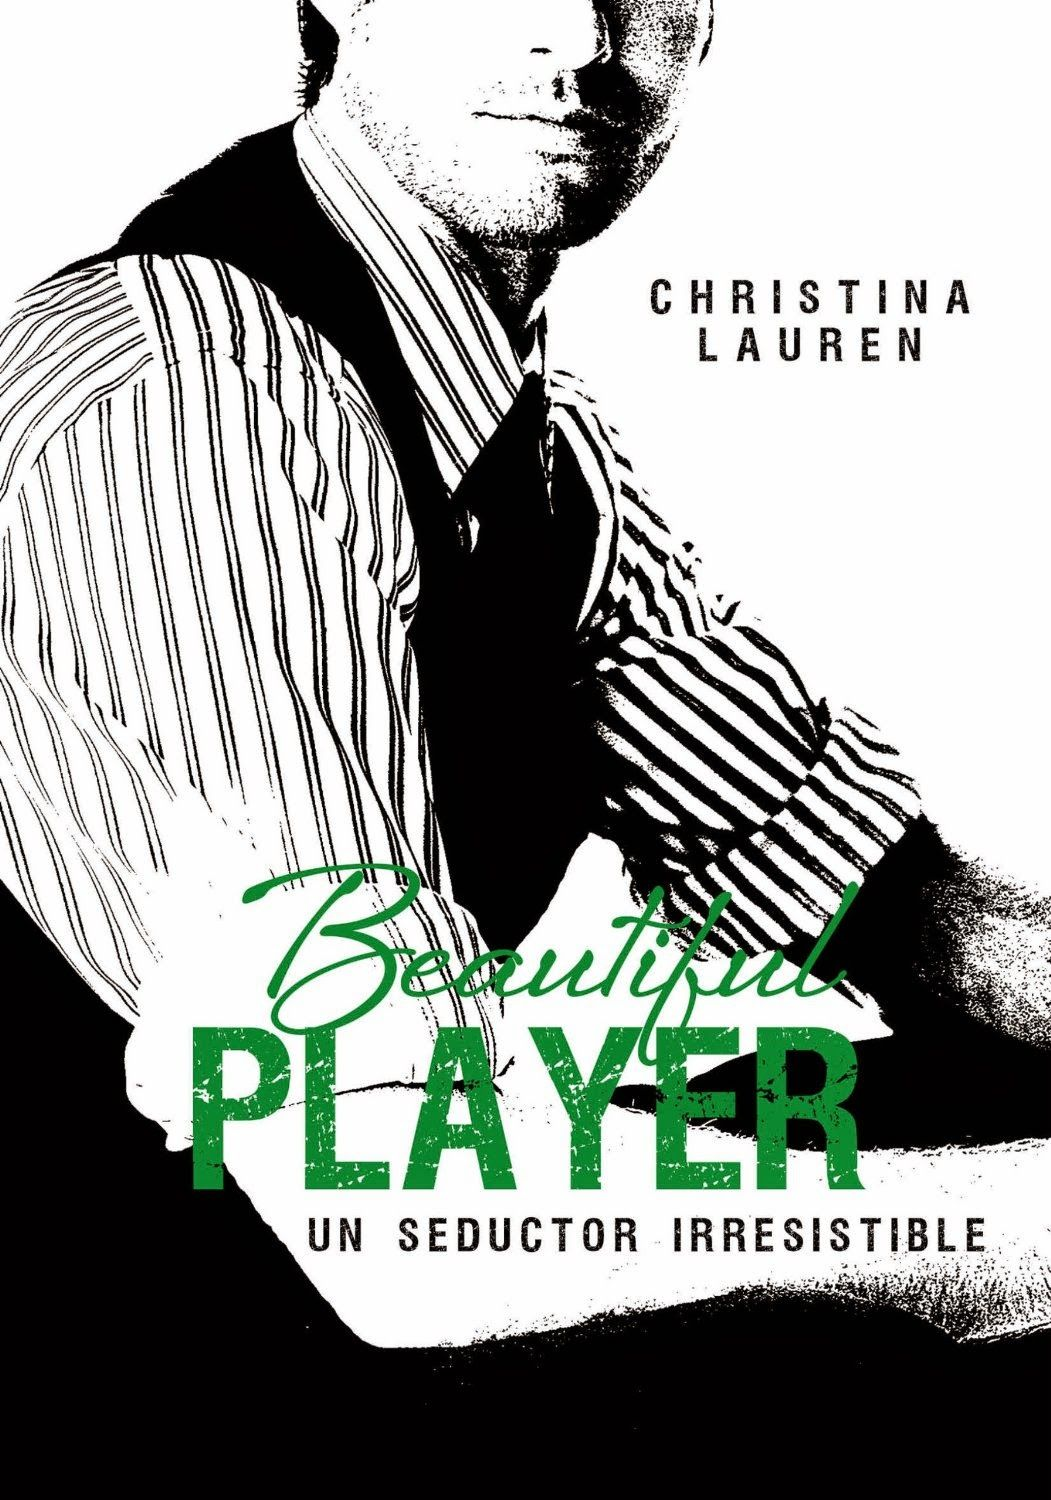 Bastard Libro Mis Momentos De Lectura Beautiful Player Beautiful